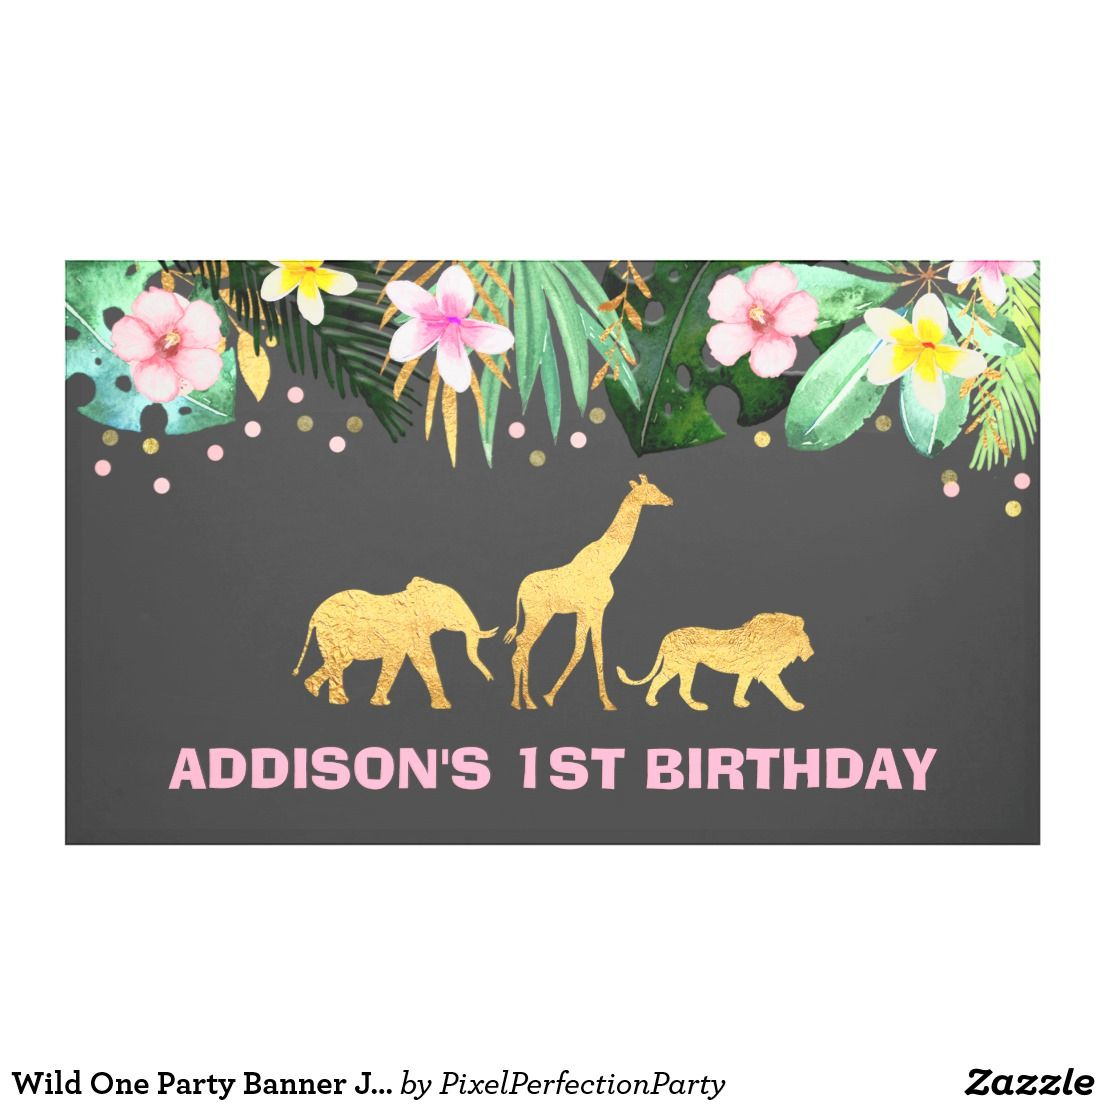 wild one party banner jungle animals party in 2018 happy